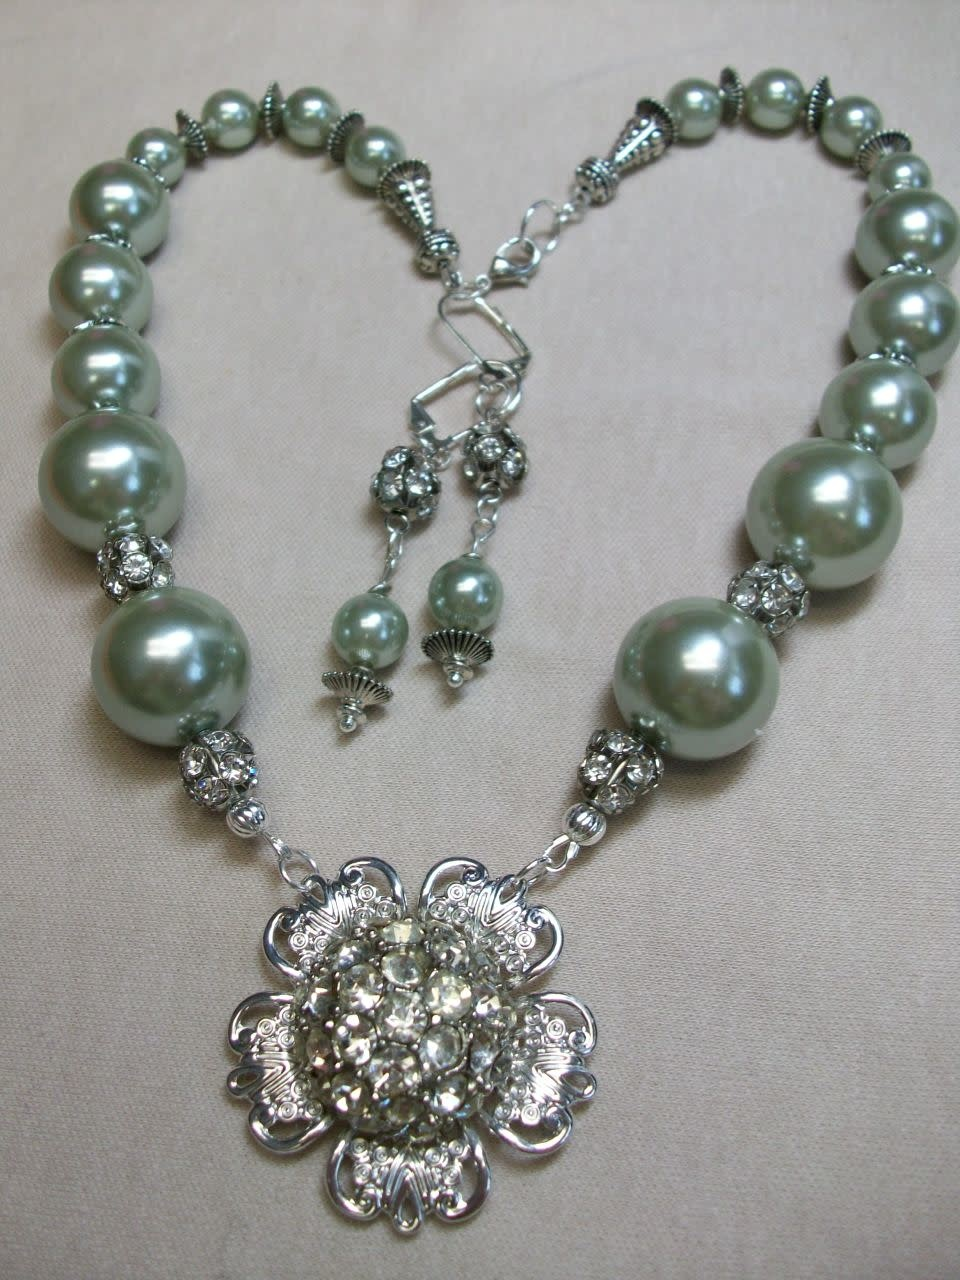 Sharon B's Originals Silver Studded Crystal Button w/ Mint Green Pearls Necklace & Earring Set